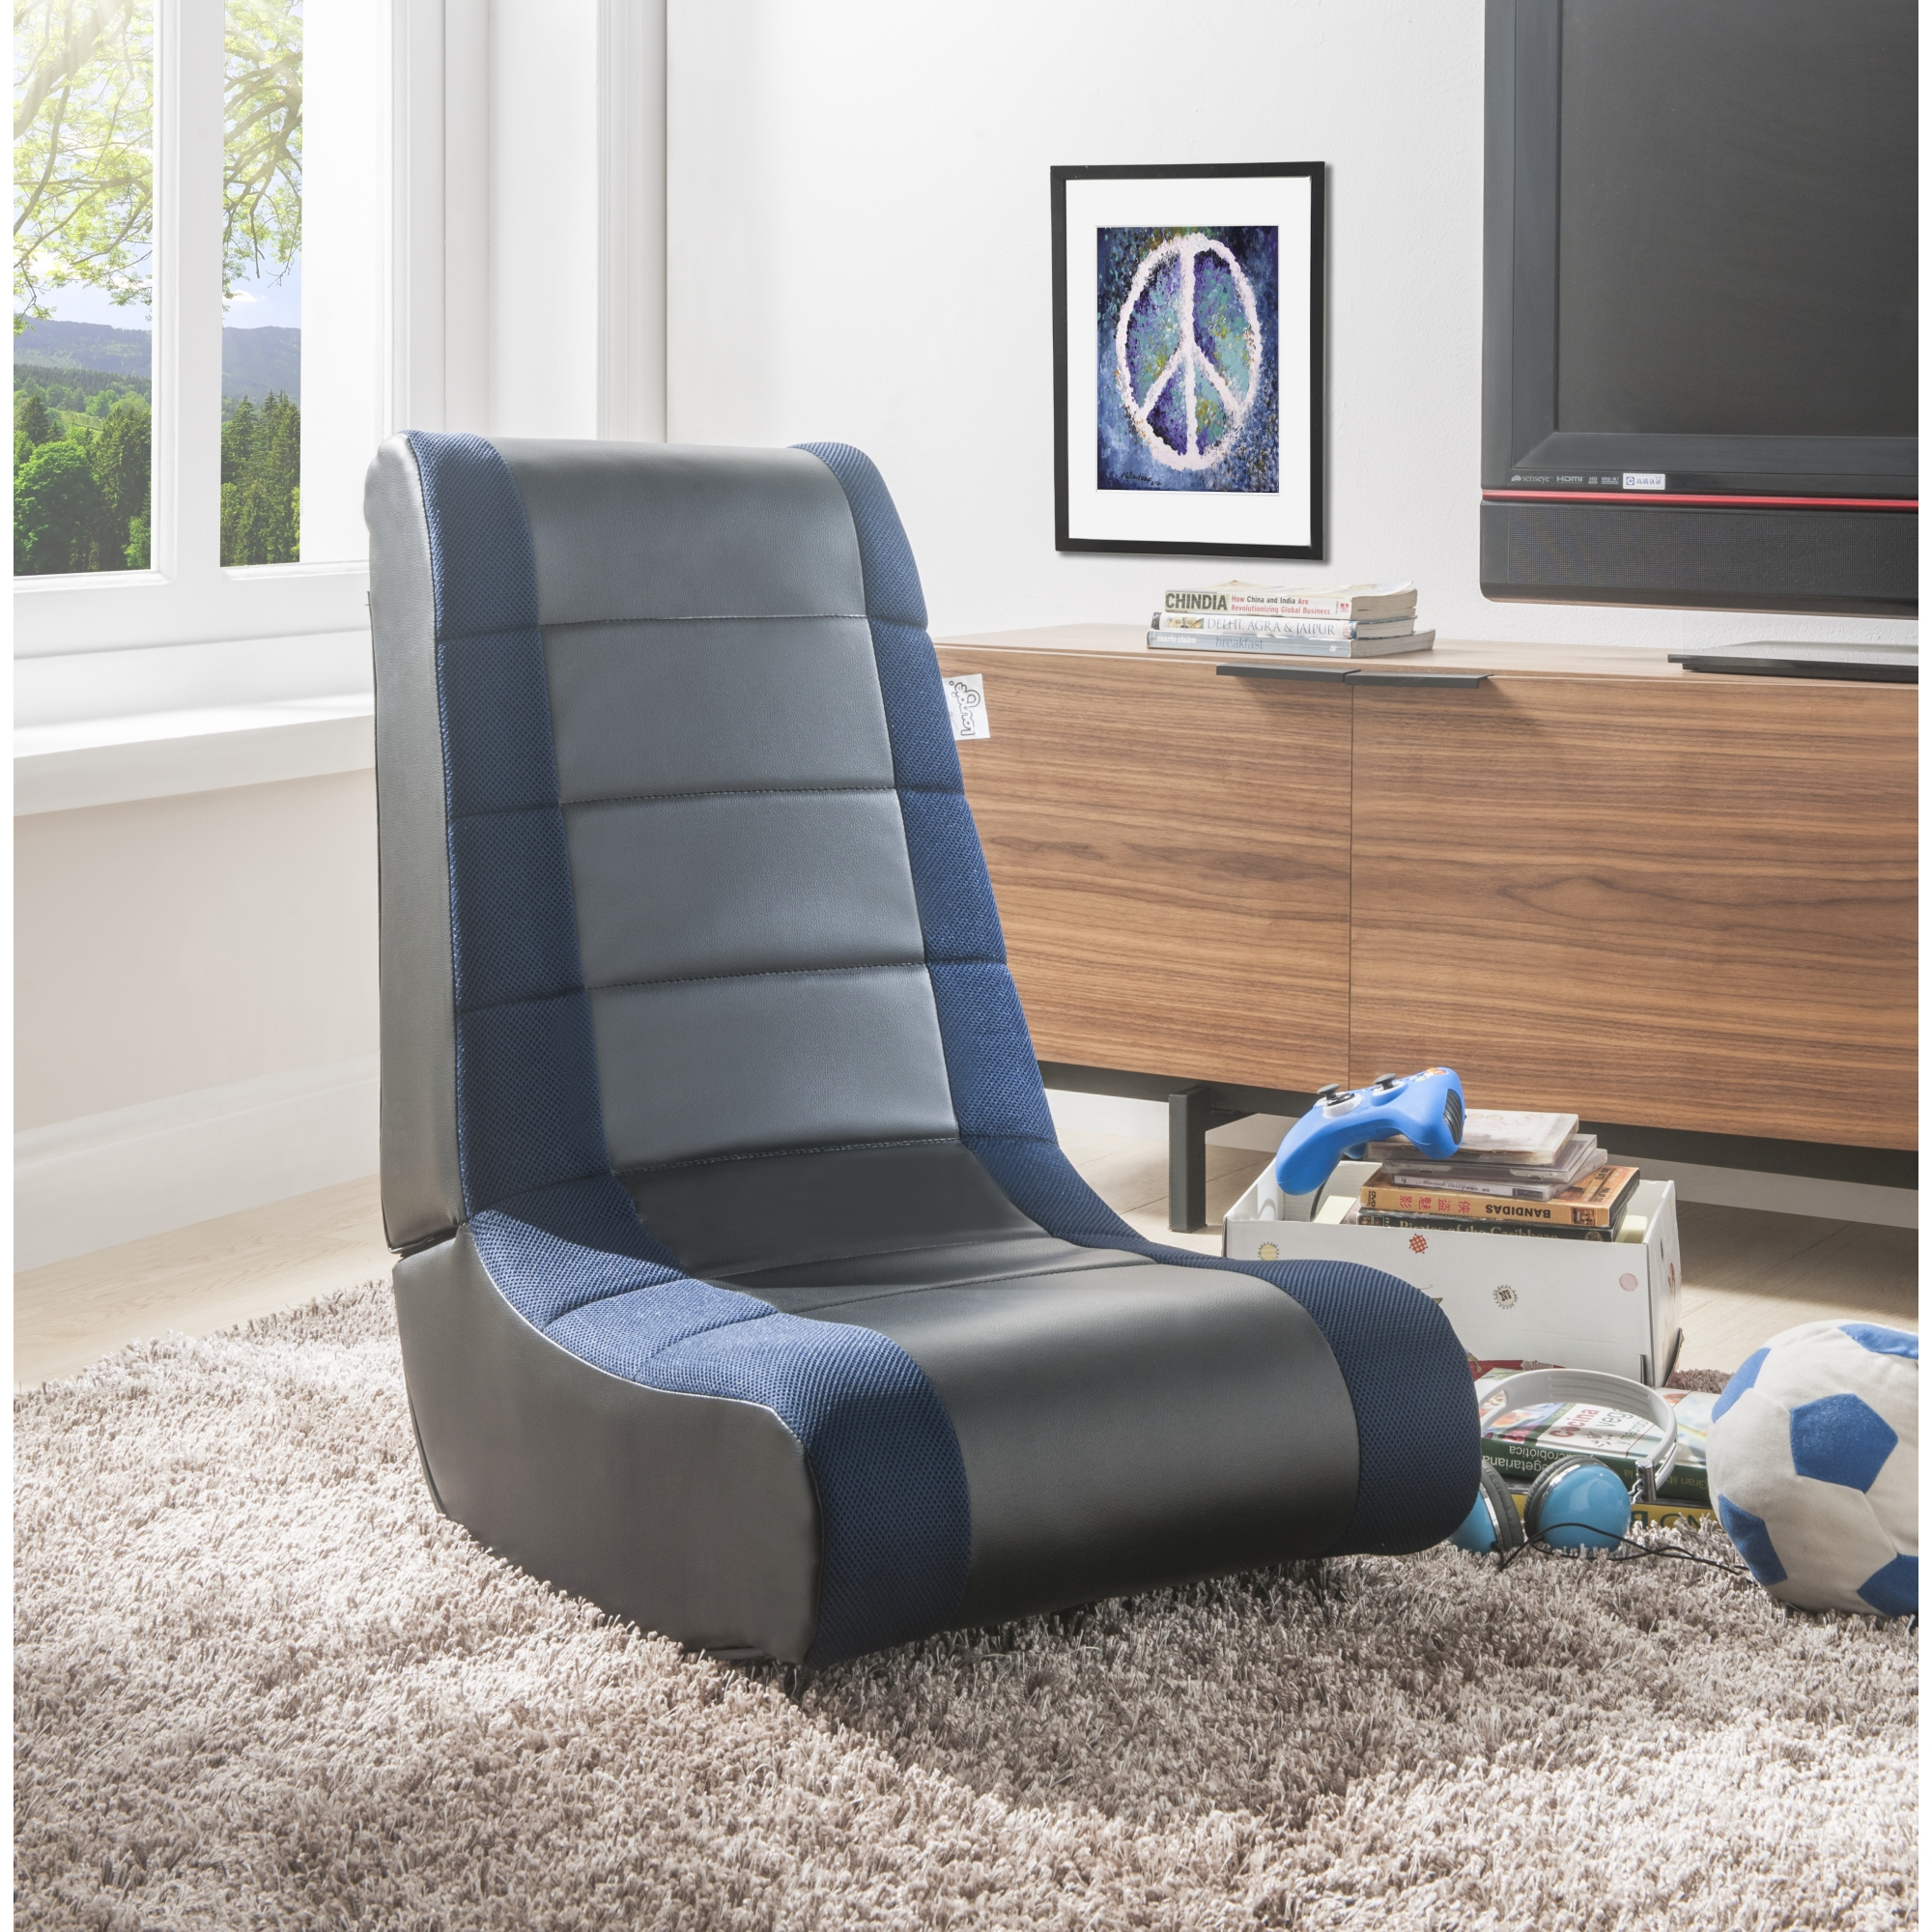 Loungie Black/Blue PU Leather Chair For Kids, Teens, Adults, Boys Or Girls